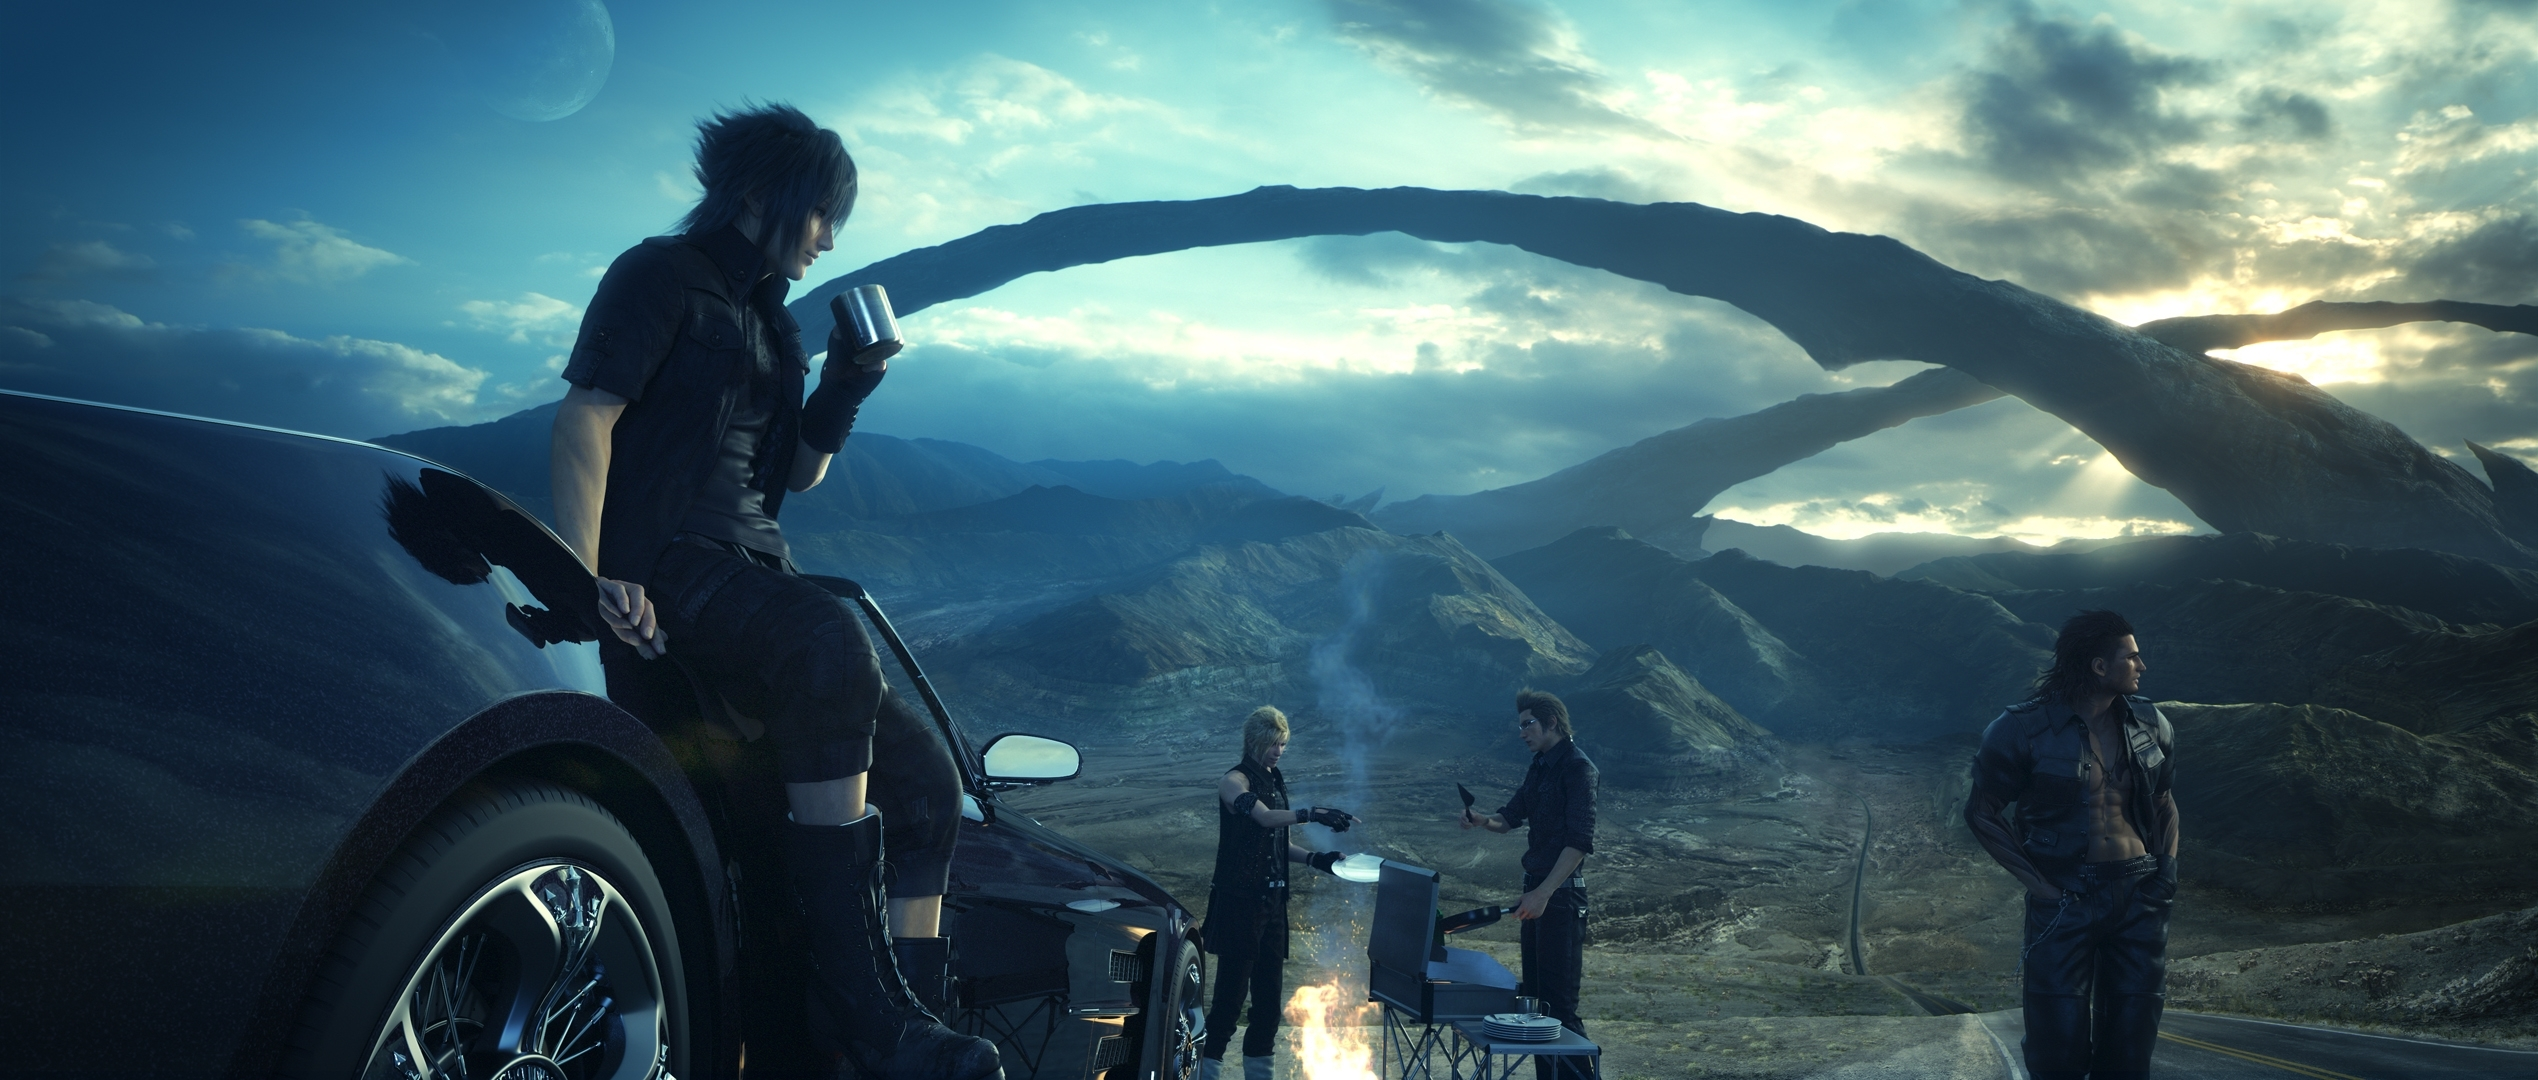 10 Top Final Fantasy 15 Wallpapers FULL HD 1920×1080 For PC Background